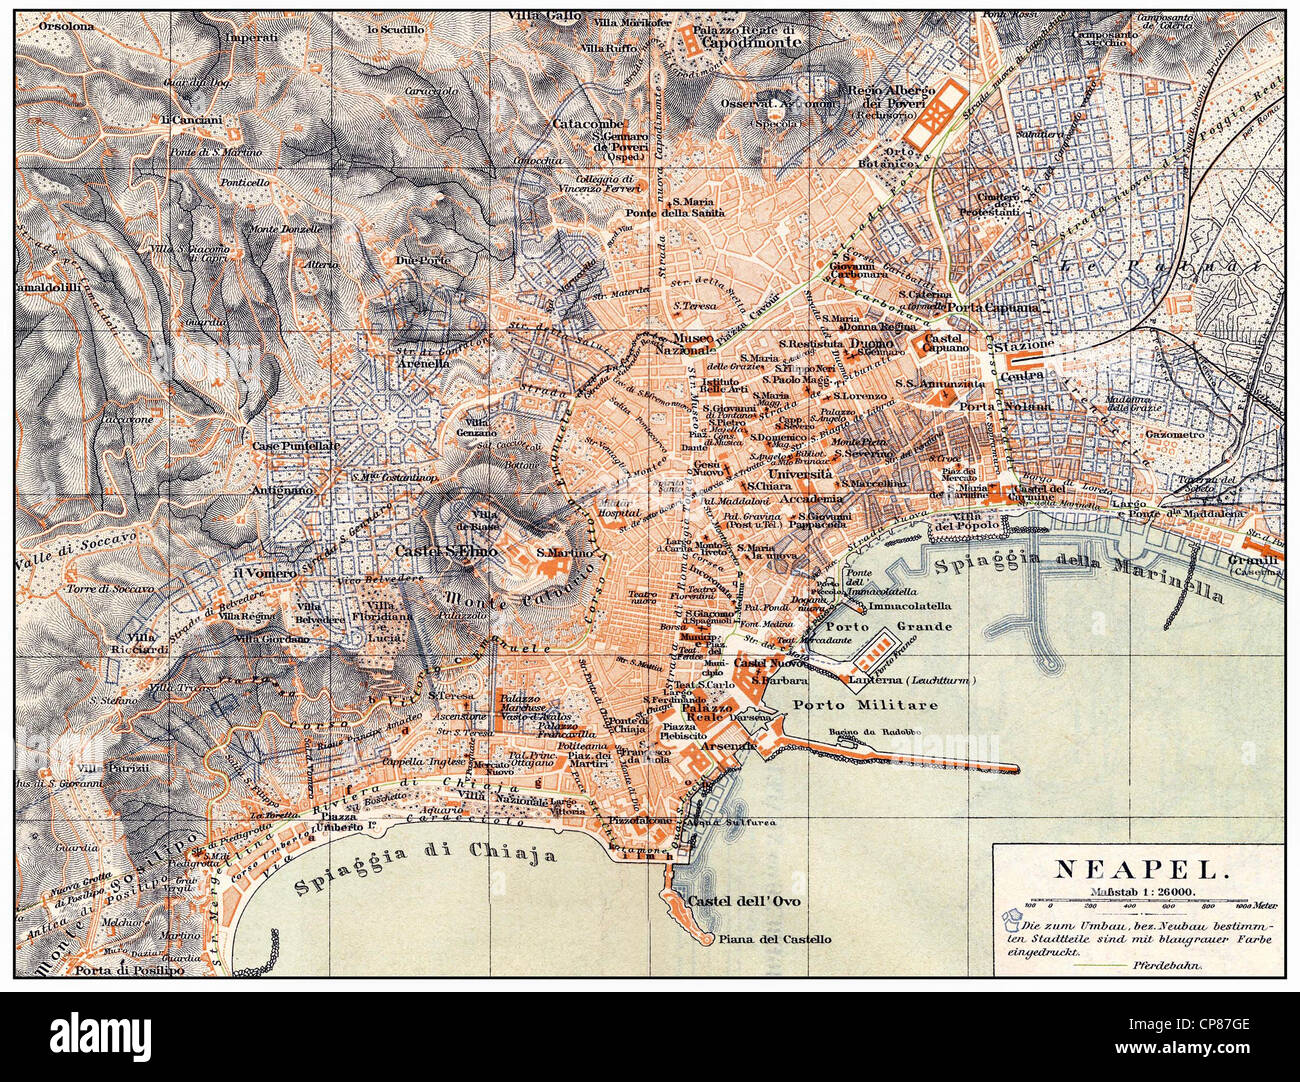 Historical map of Naples and surroundings, Italy, 19th Century Stock ...